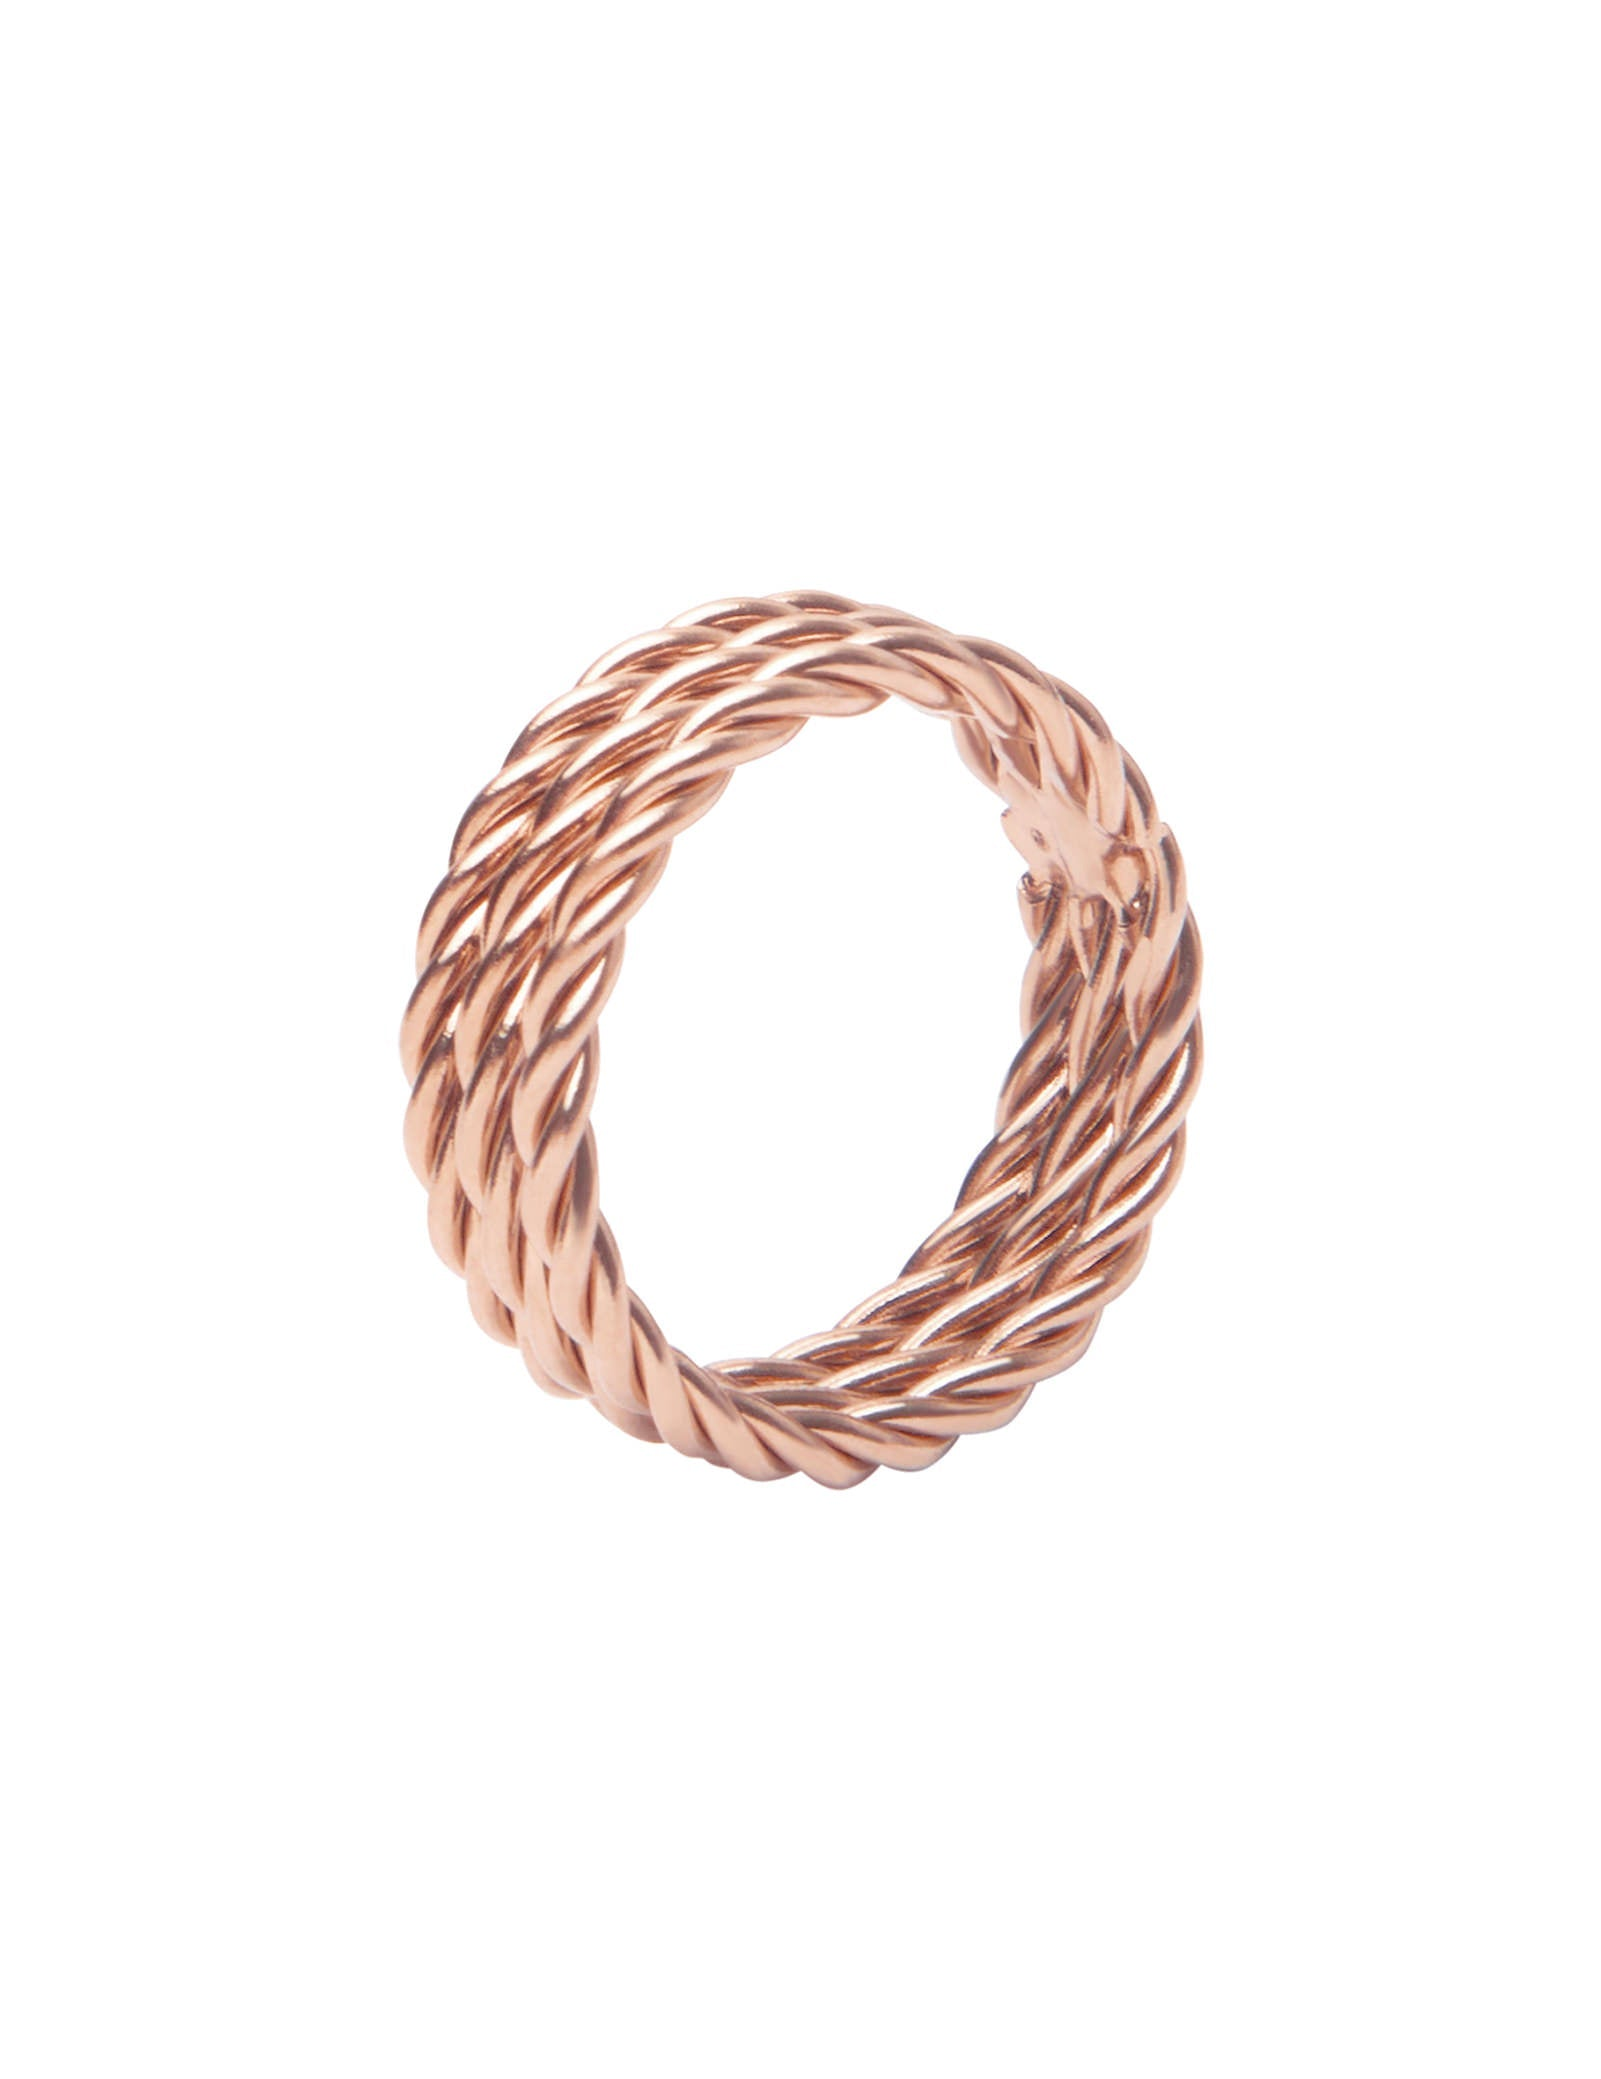 Pastiche Jewellery - Tessa Ring - Rose Gold